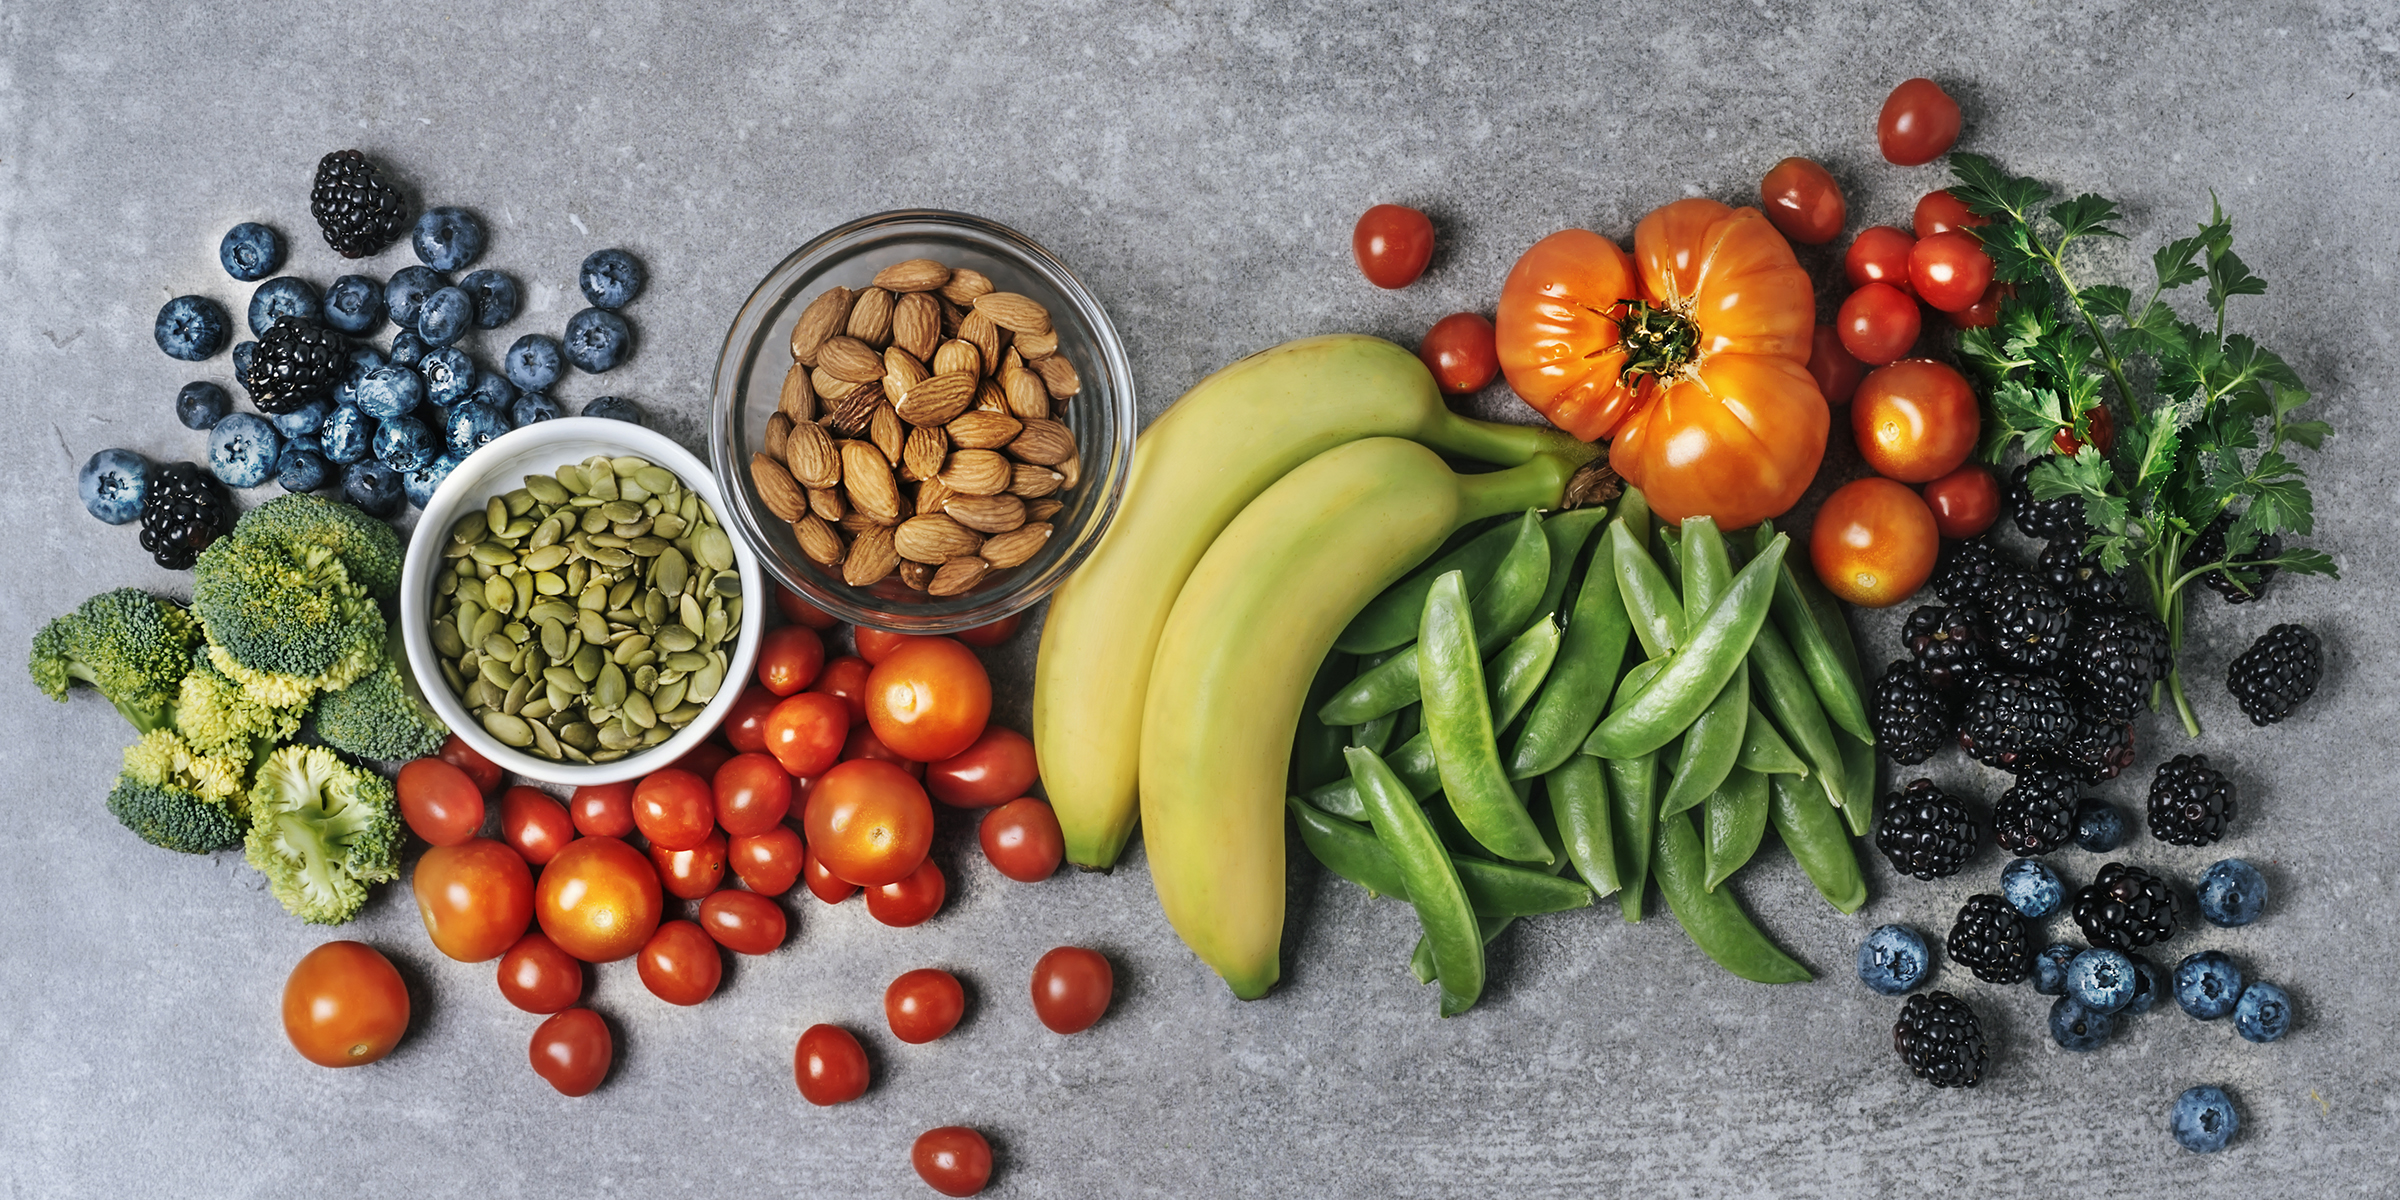 fresh-vegetables-fruits-and-nuts